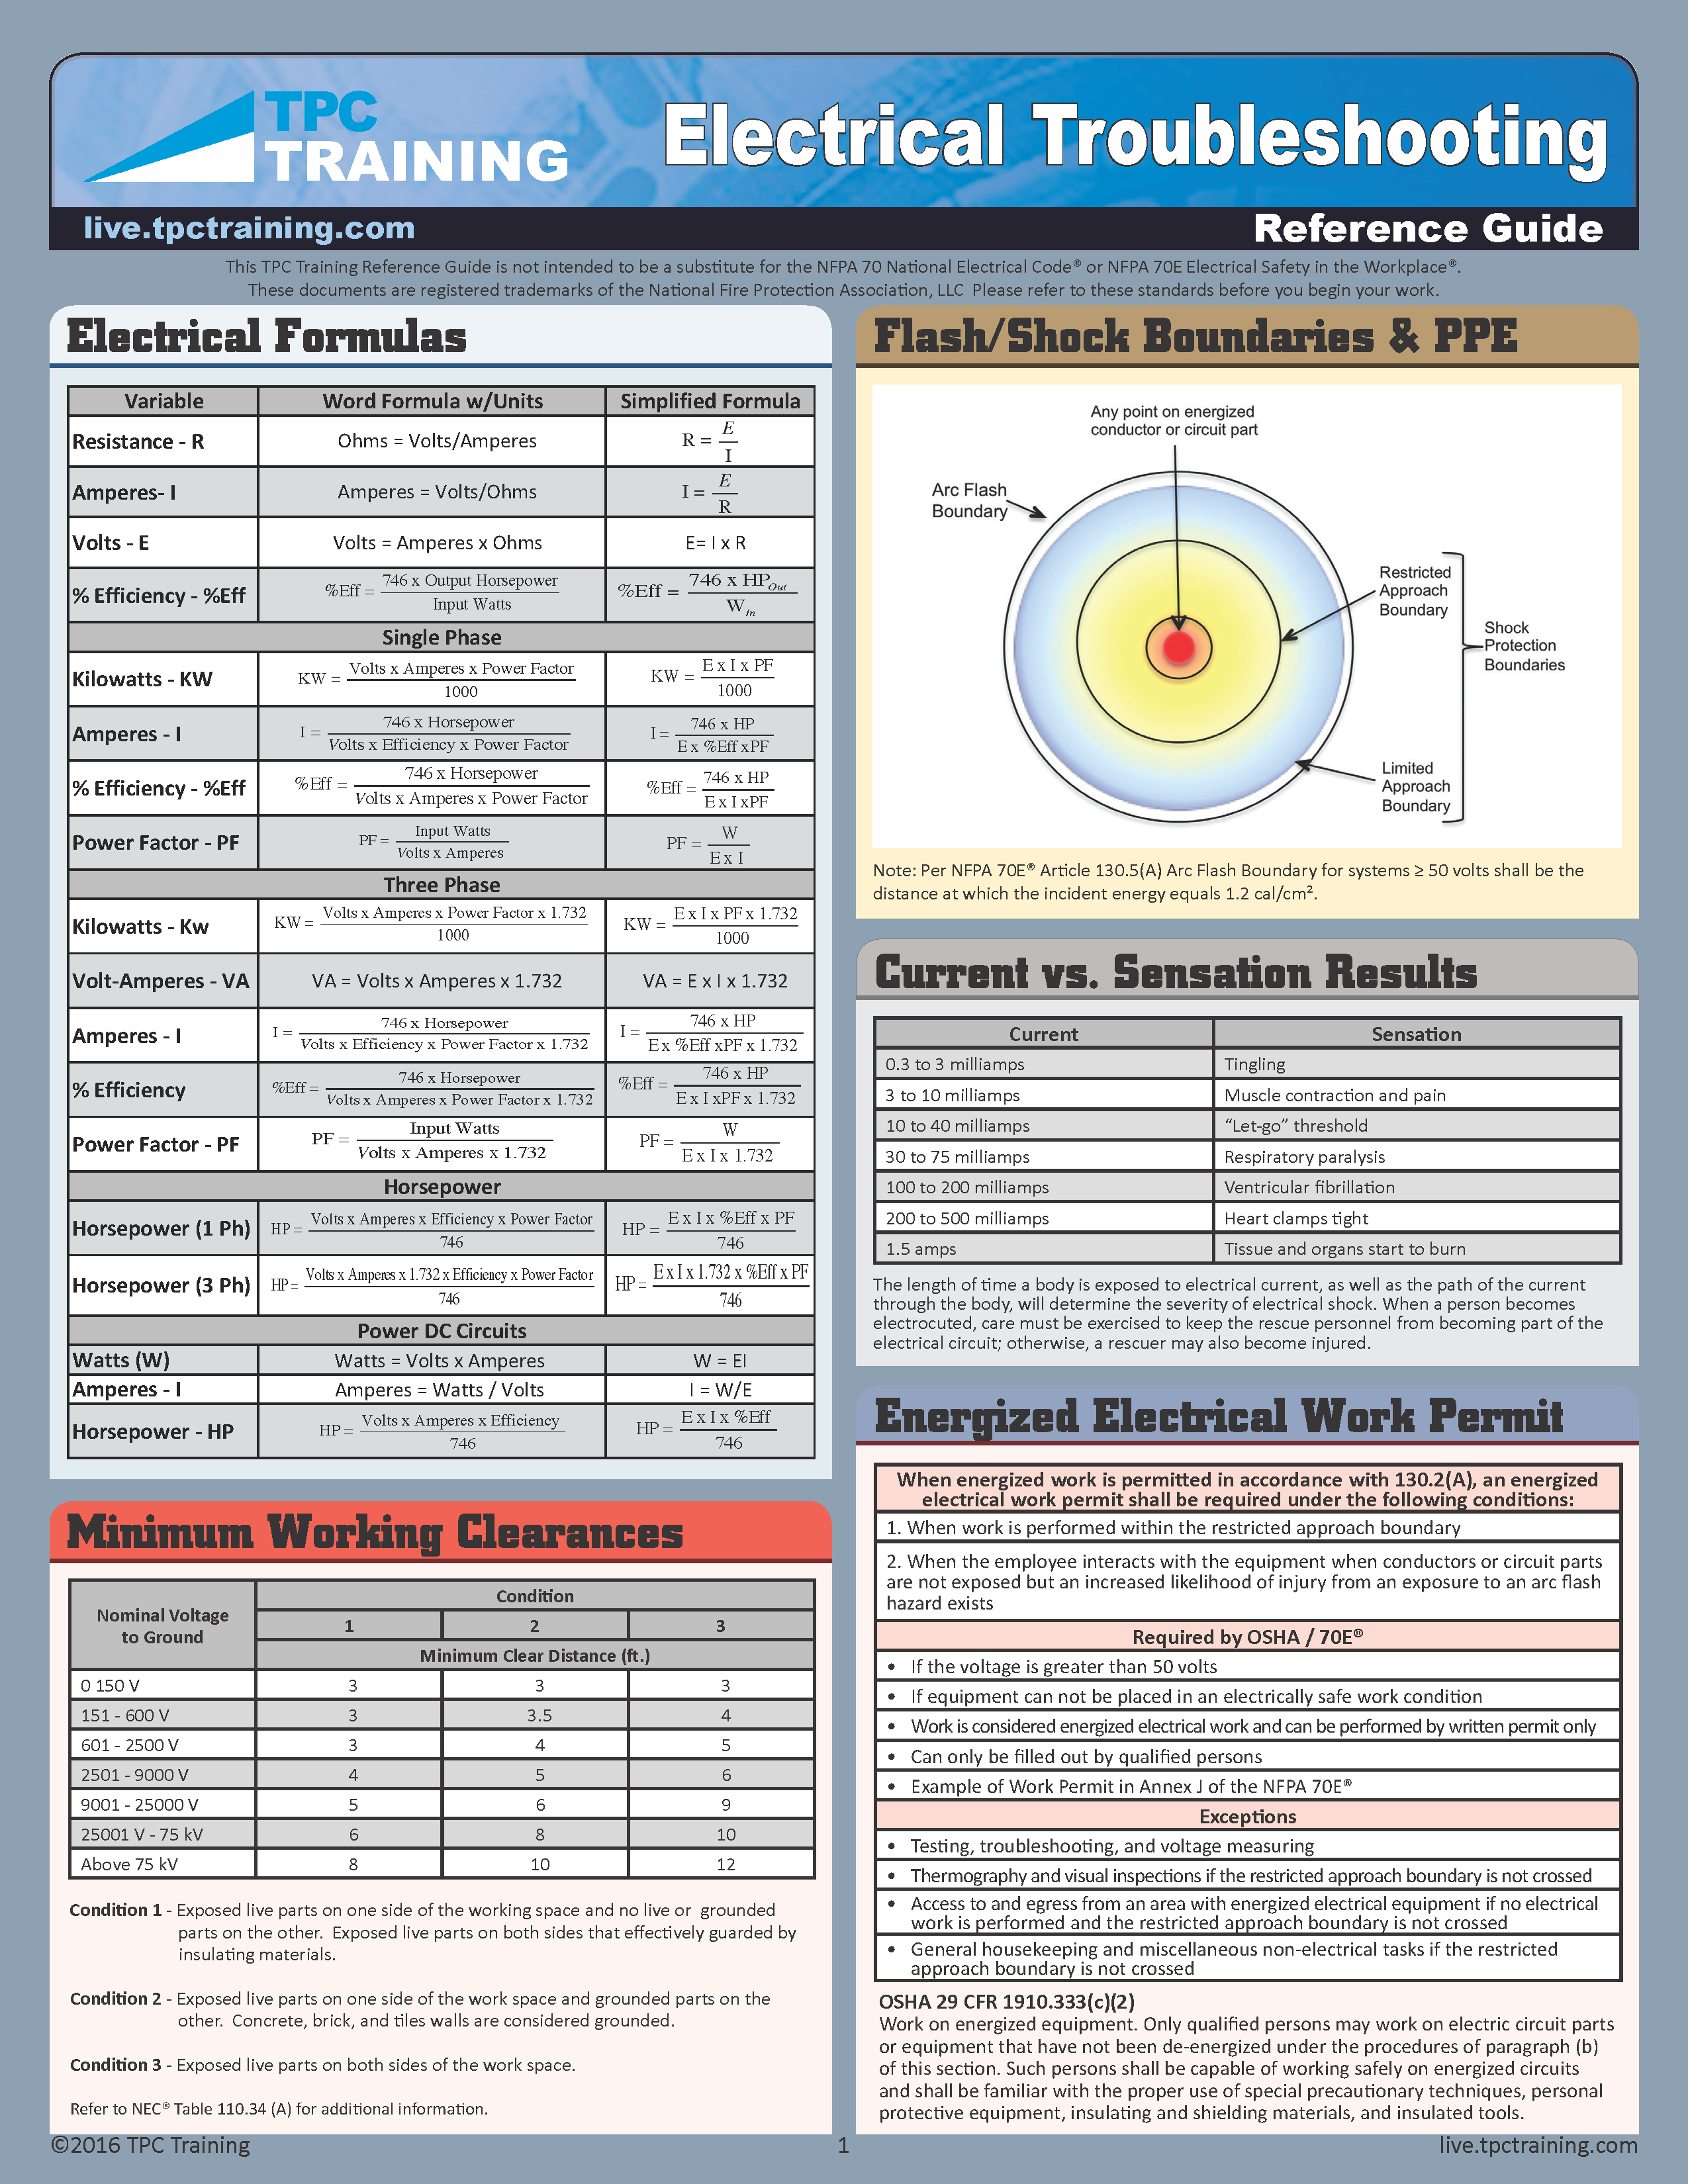 Electrical Troubleshooting Quick Reference Guide